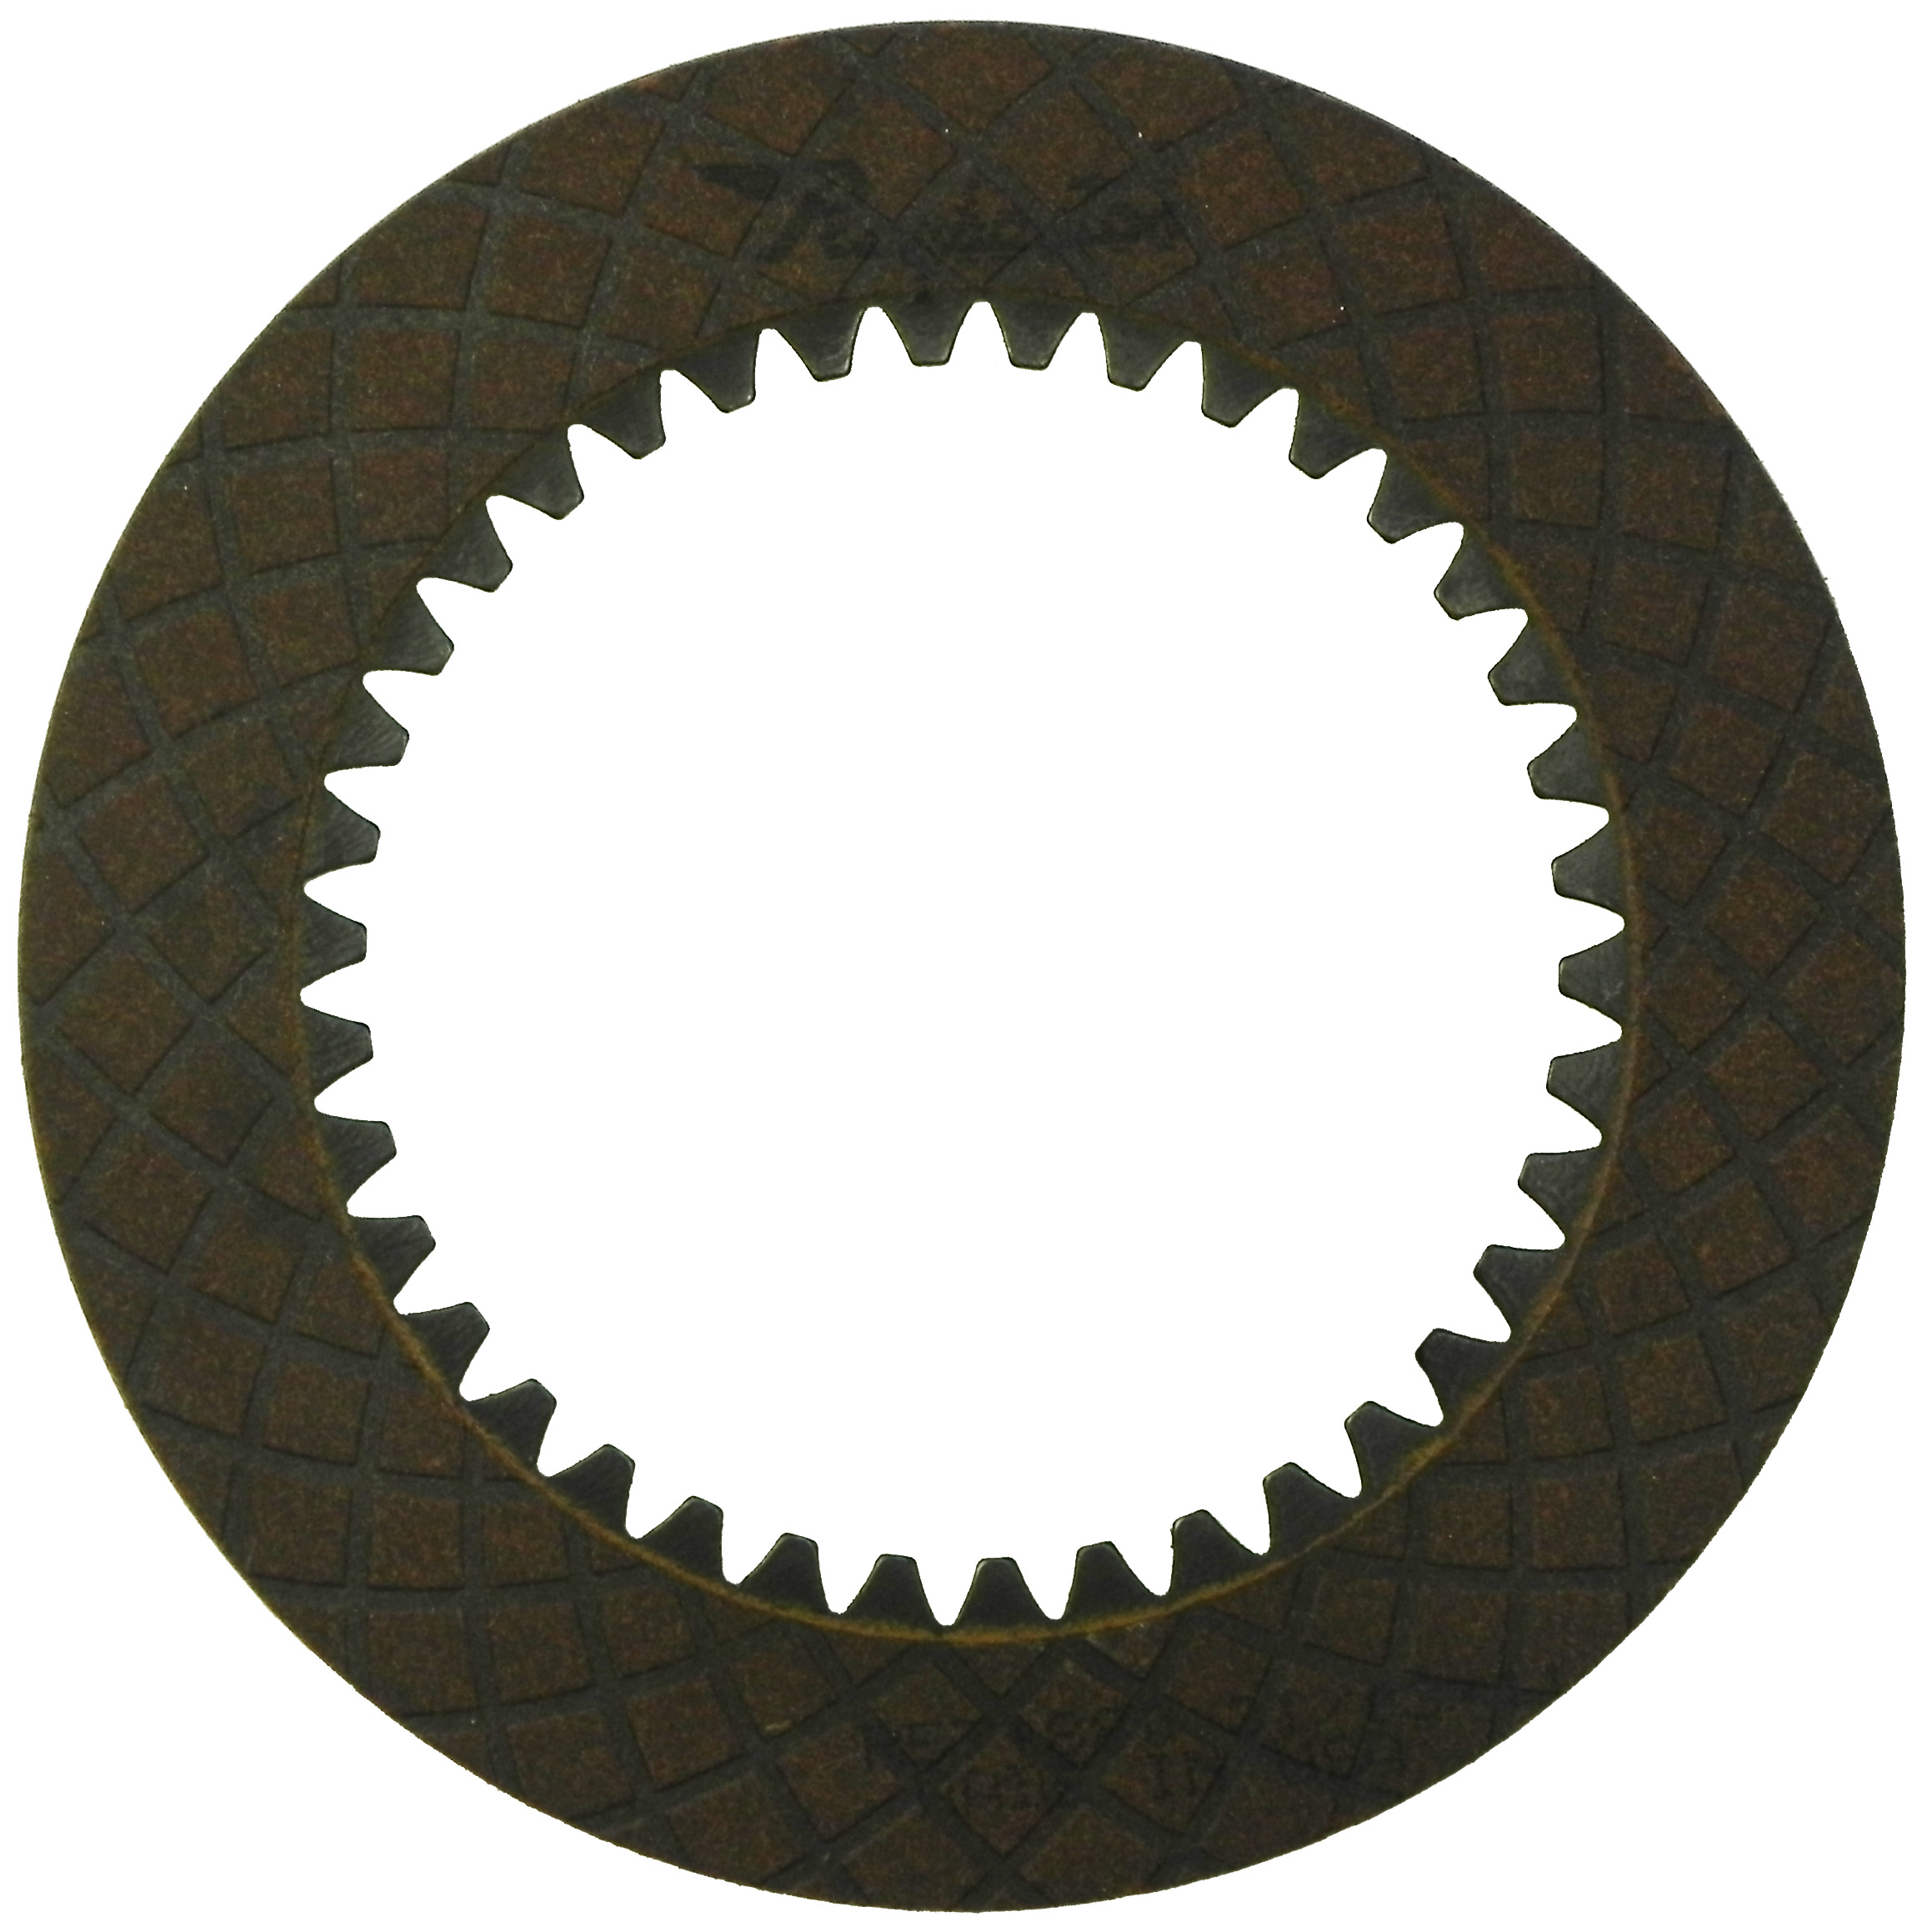 R571880 | 1996-2001 Friction Clutch Plate GPX 1st GPX